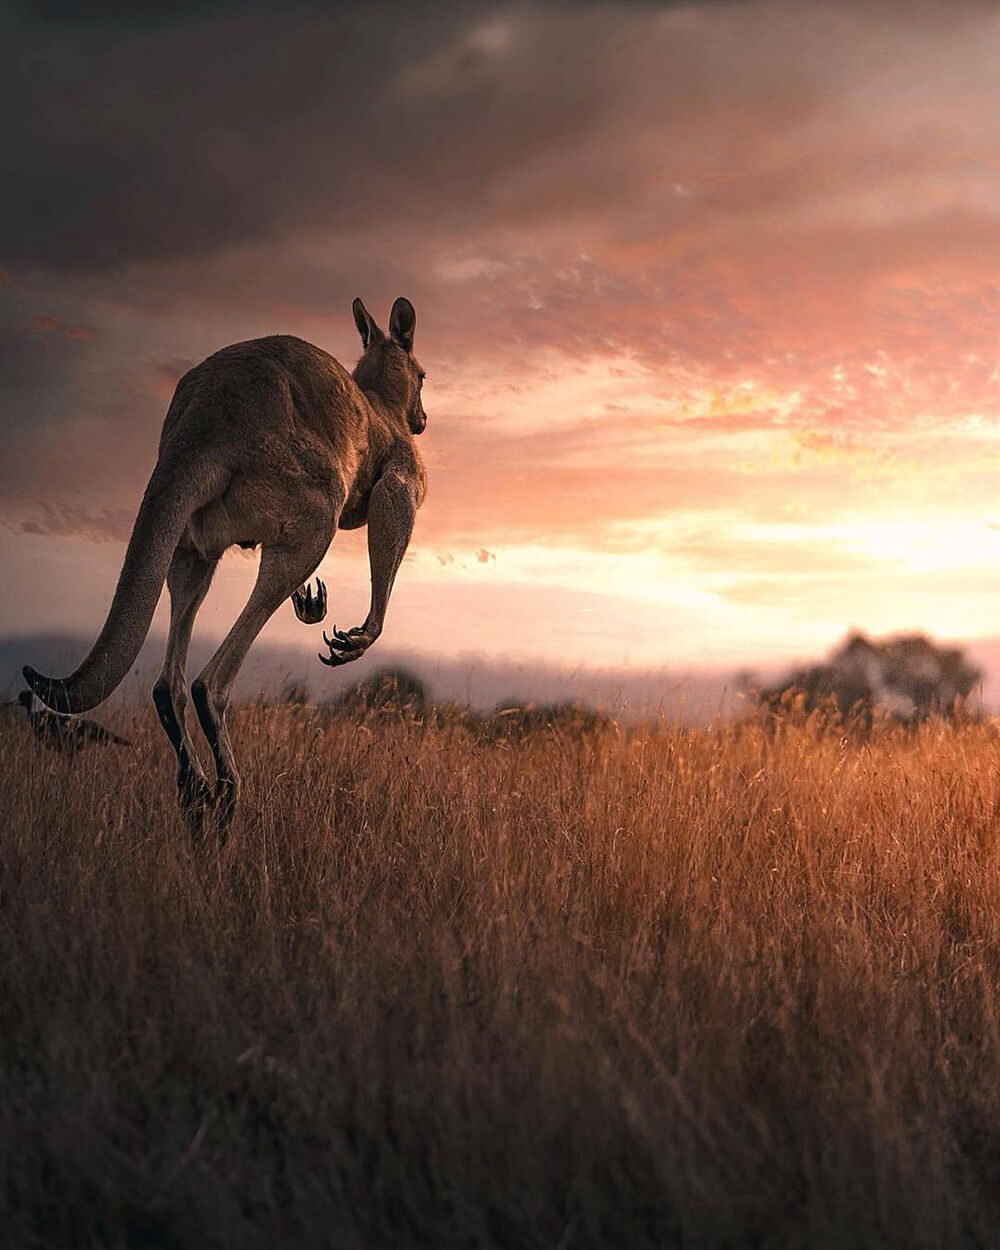 Image of kangaroo by @photo_shots_scapes